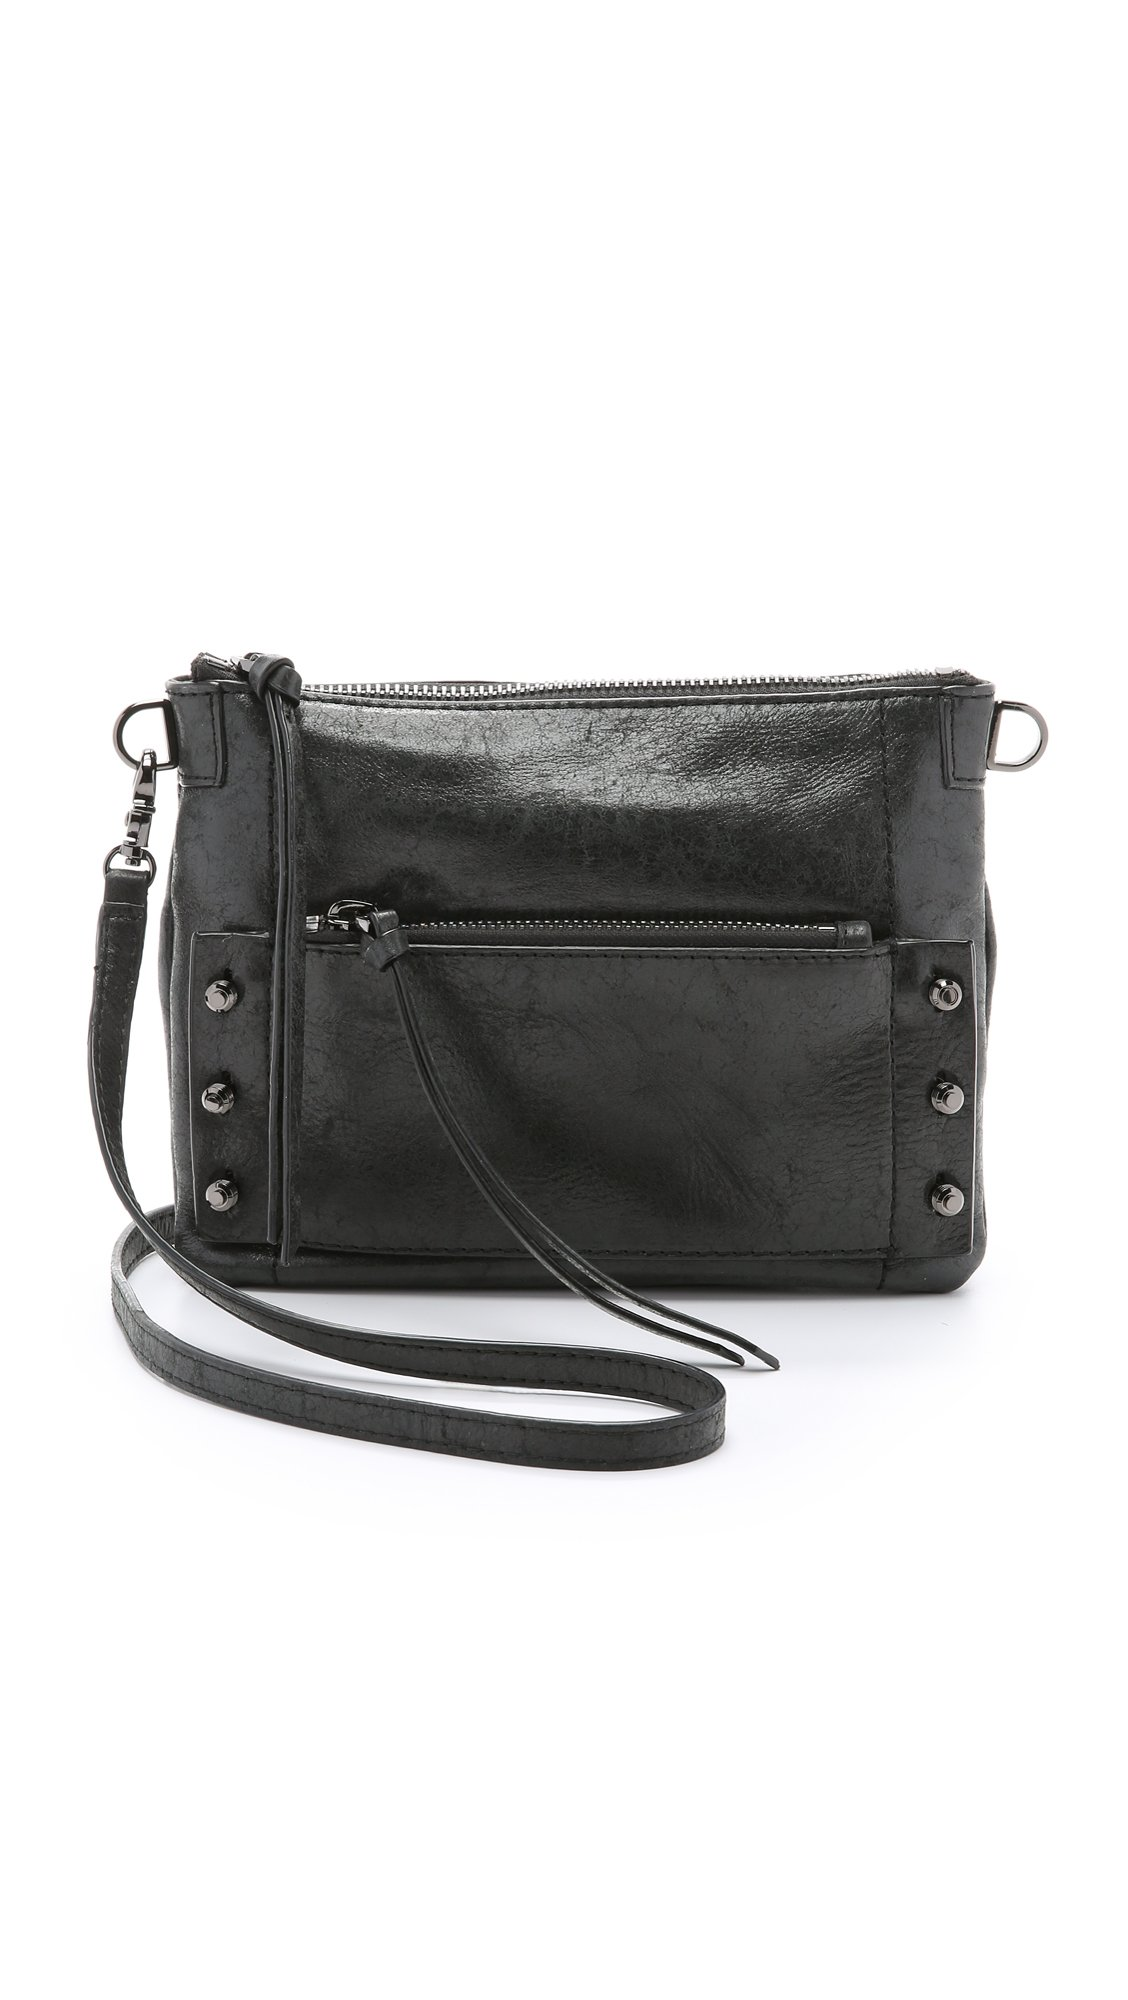 Botkier Women's Warren Cross Body Bag, Black, One Size